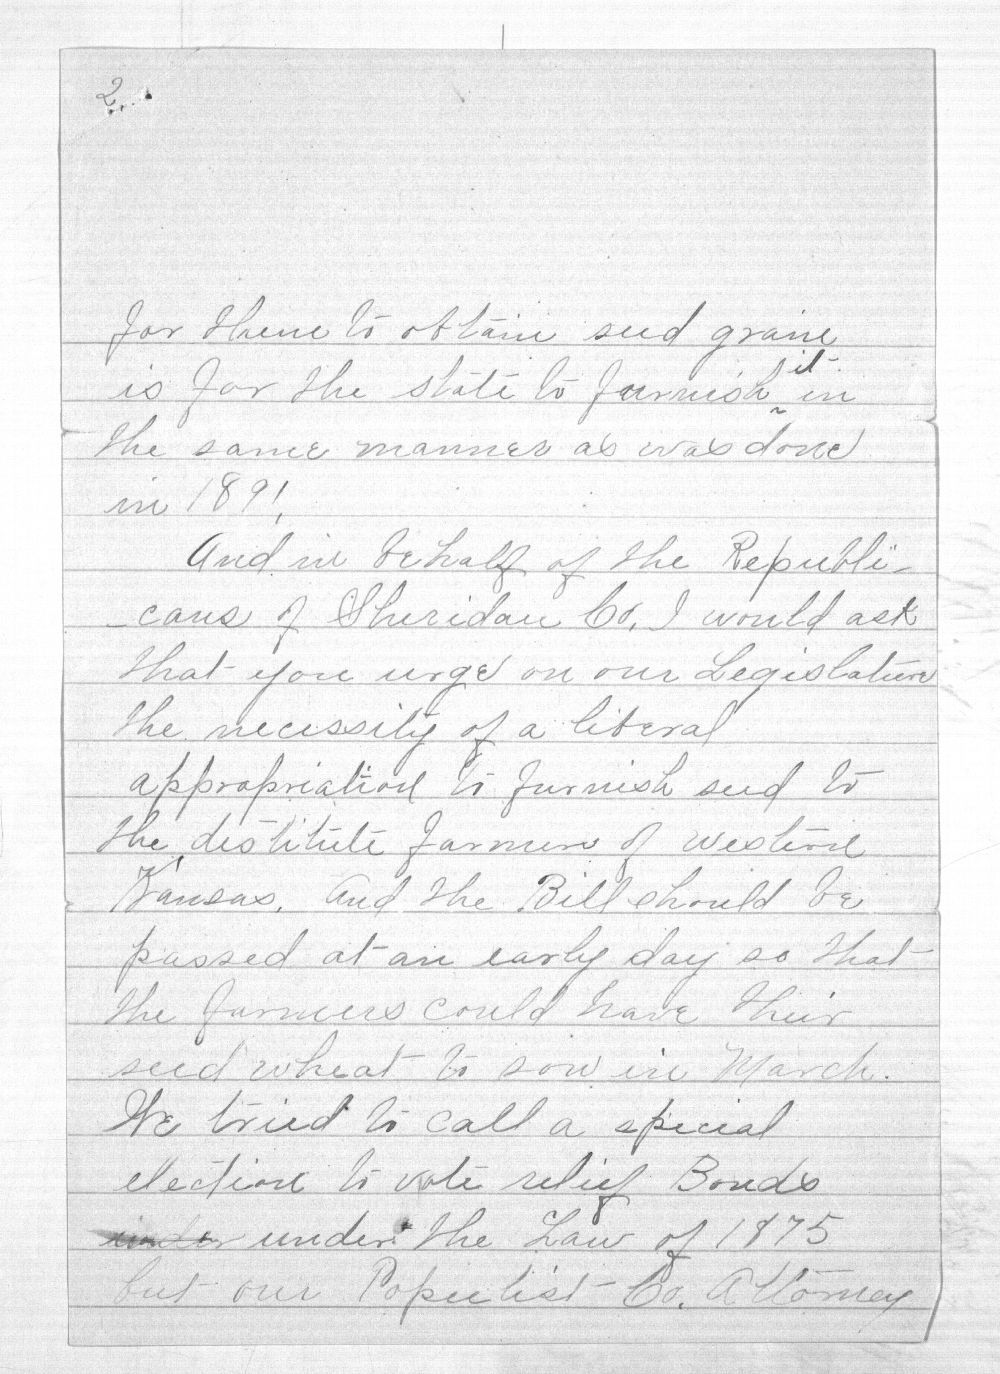 C. C. Evans to Governor Edmund Morrill - 2